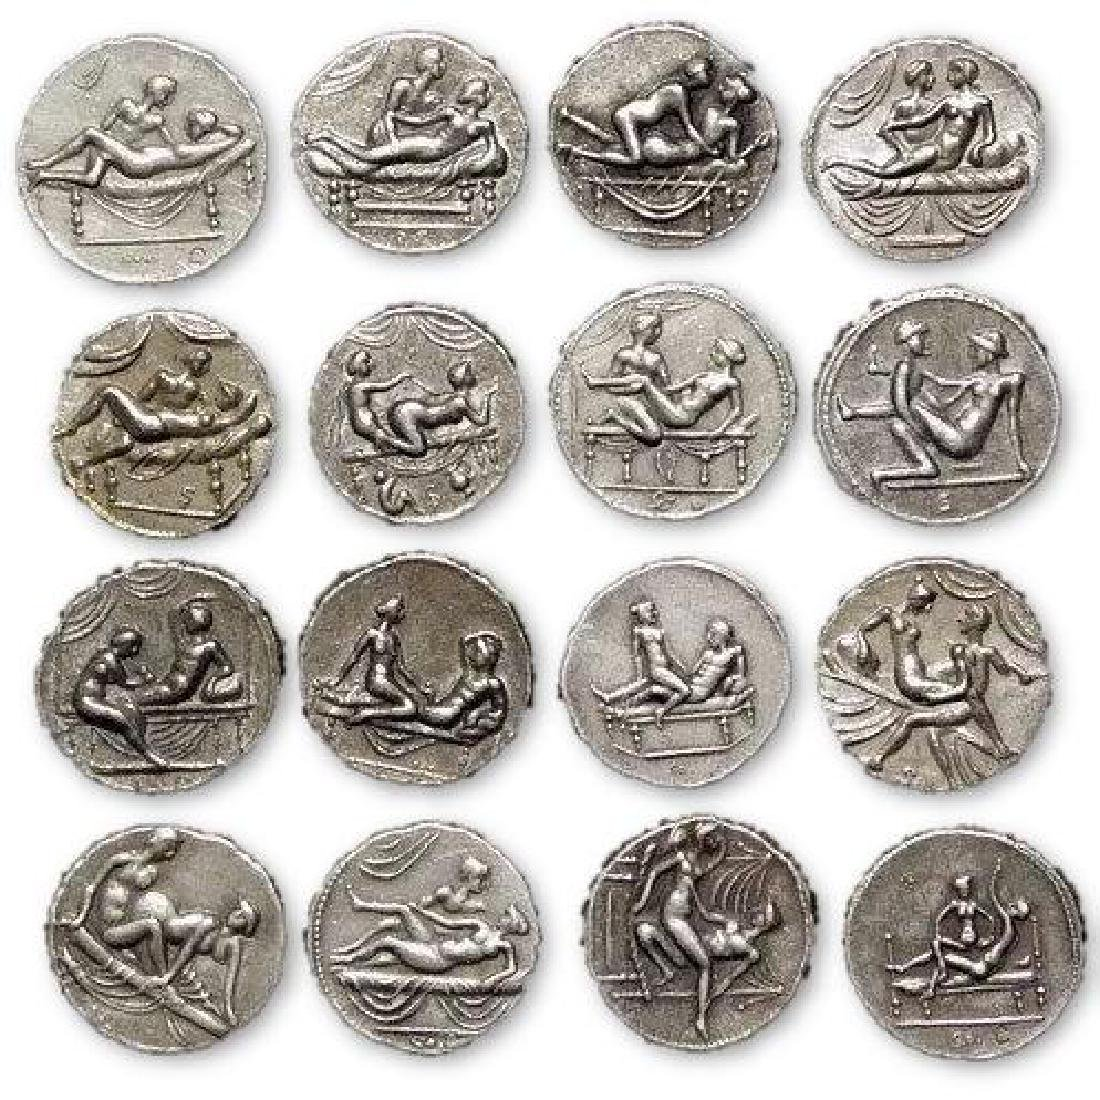 Erotic Positions Token Coins of Ancient Rome